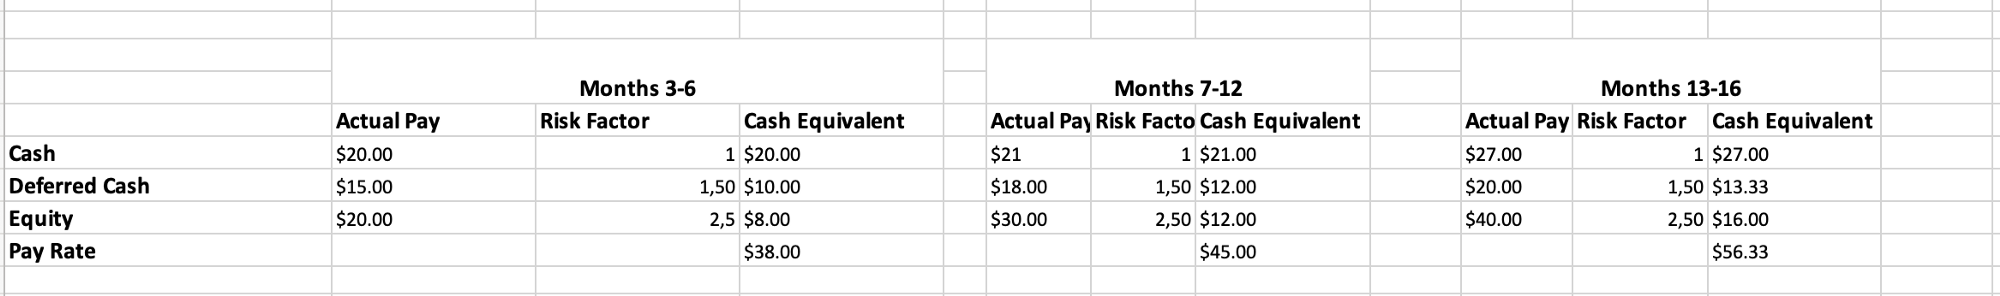 Example of compensation table with deffered cash and equity